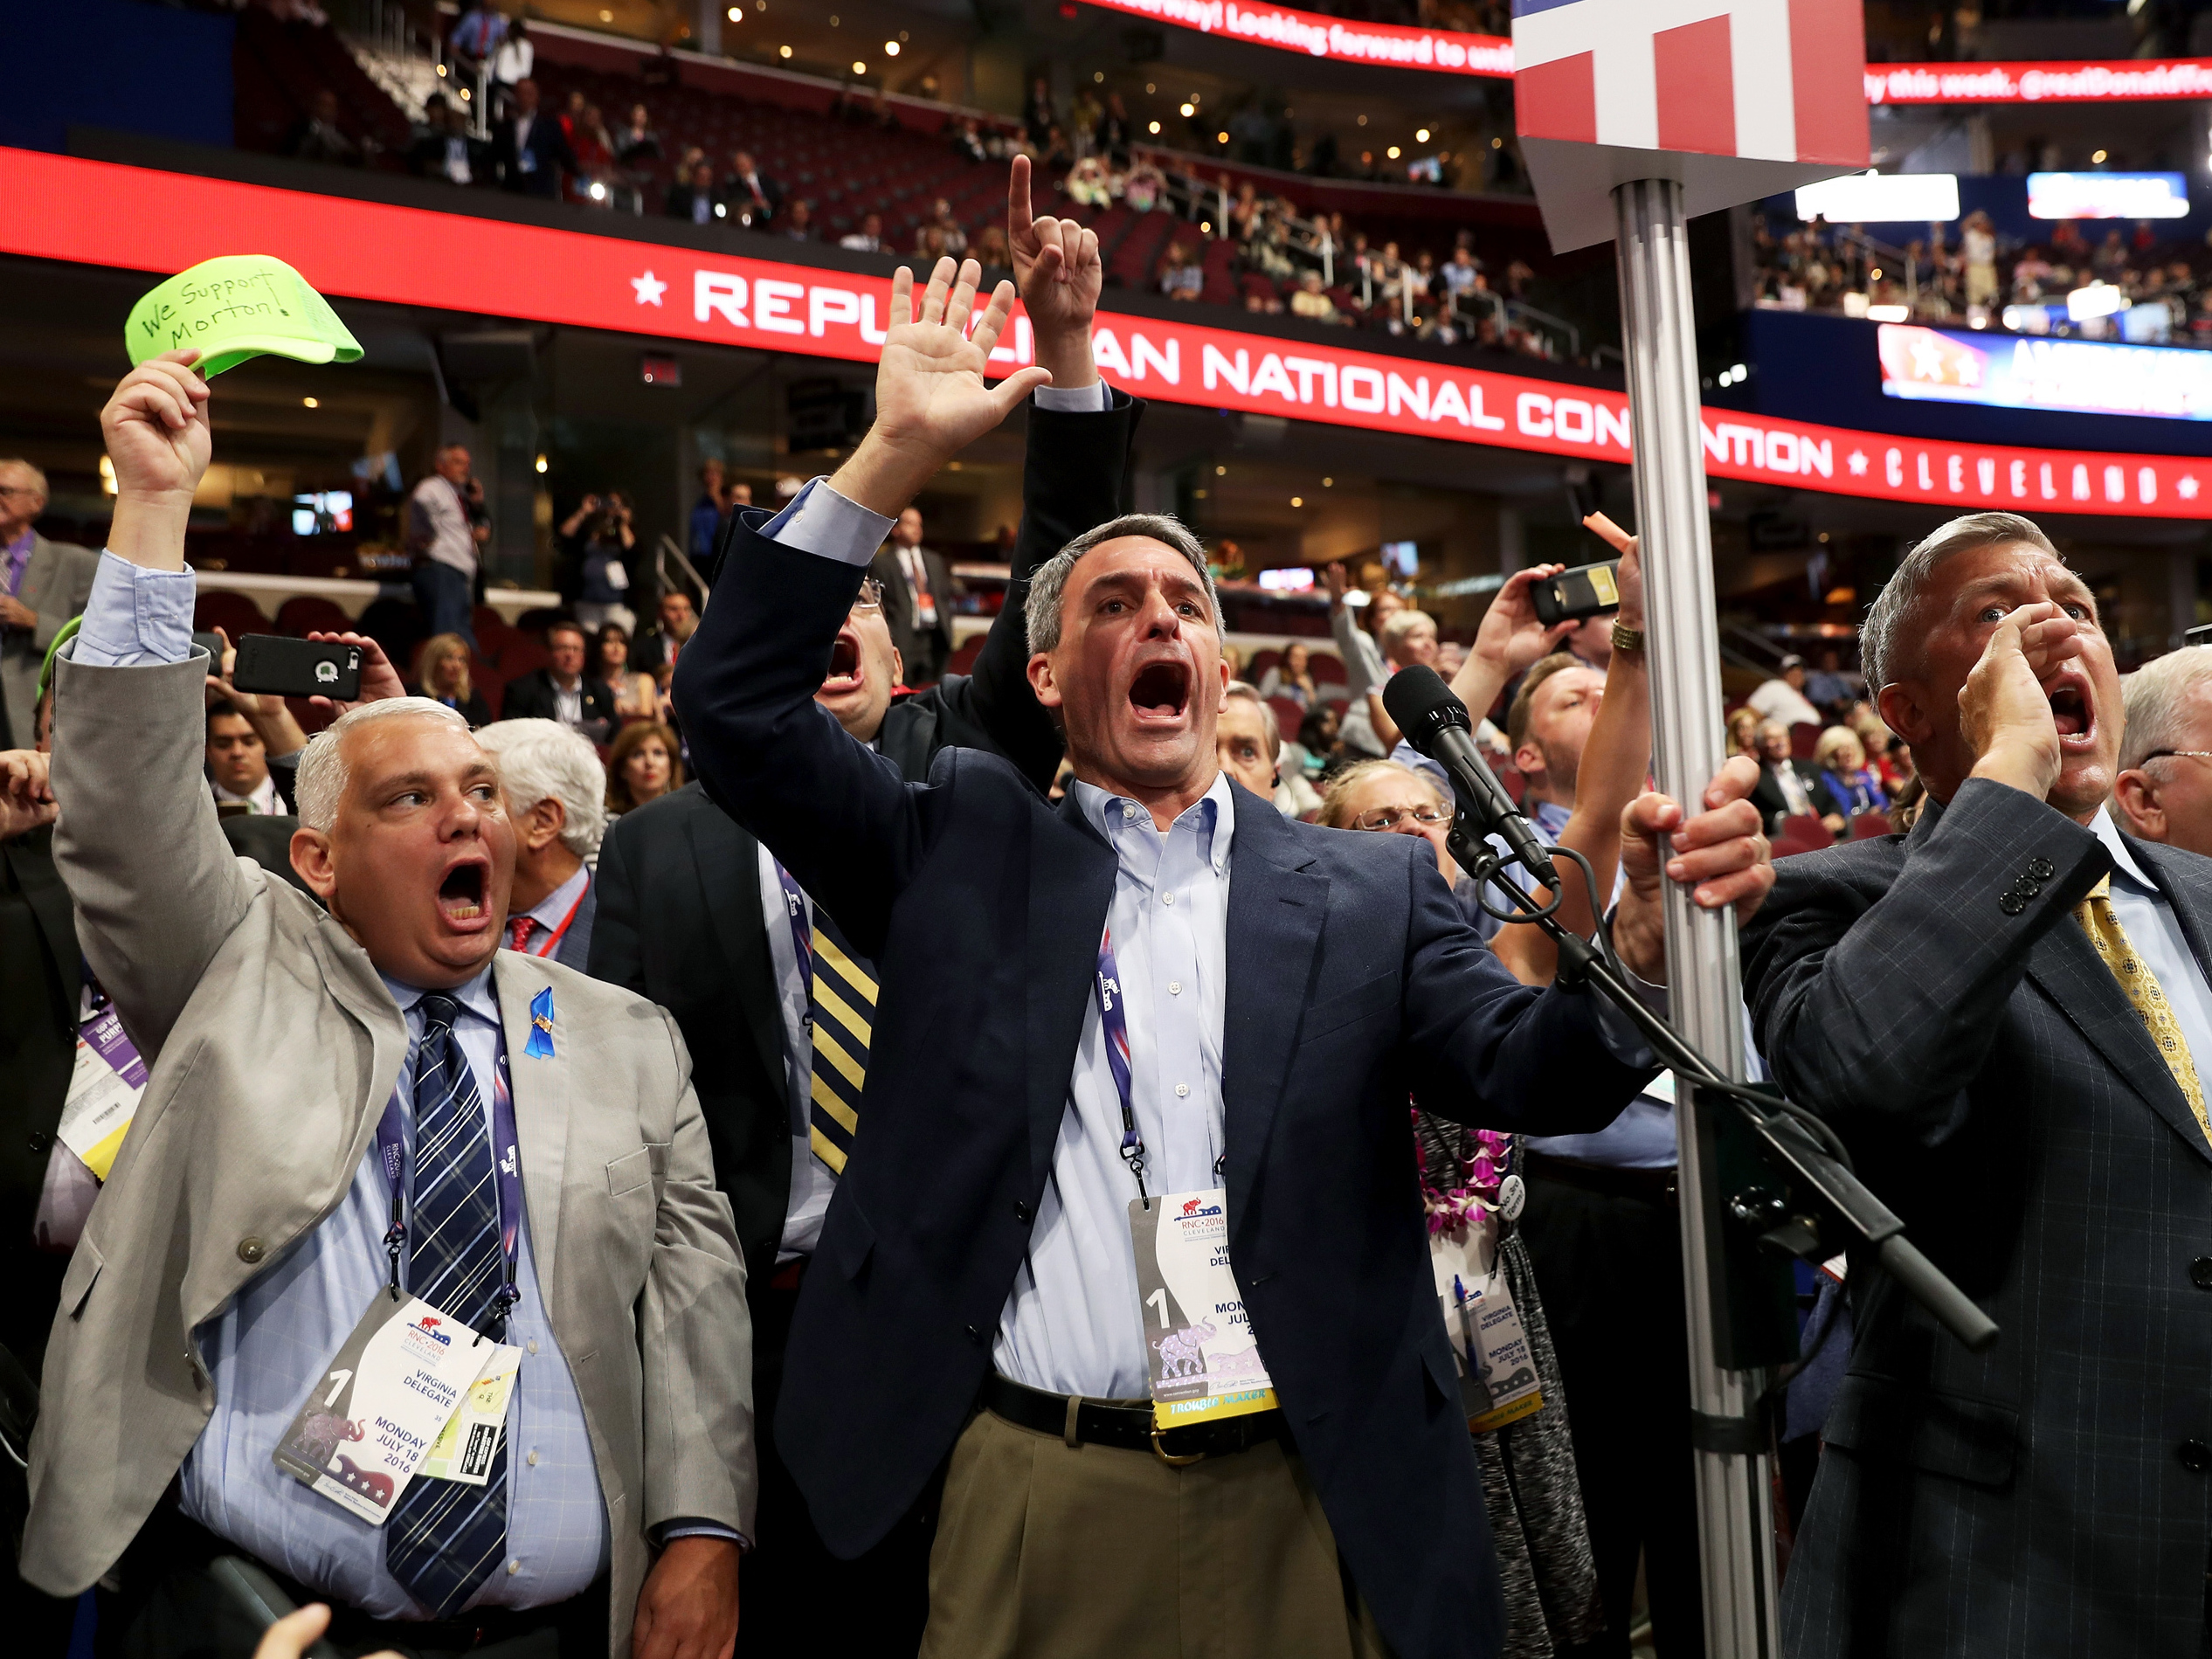 Former Virginia Attorney General Ken Cuccinelli (left) along with other delegates from Virginia chants for a roll call vote on Monday, the first day of the Republican National Convention, at the Quicken Loans Arena in Cleveland. (Photo by John Moore/Getty Images)